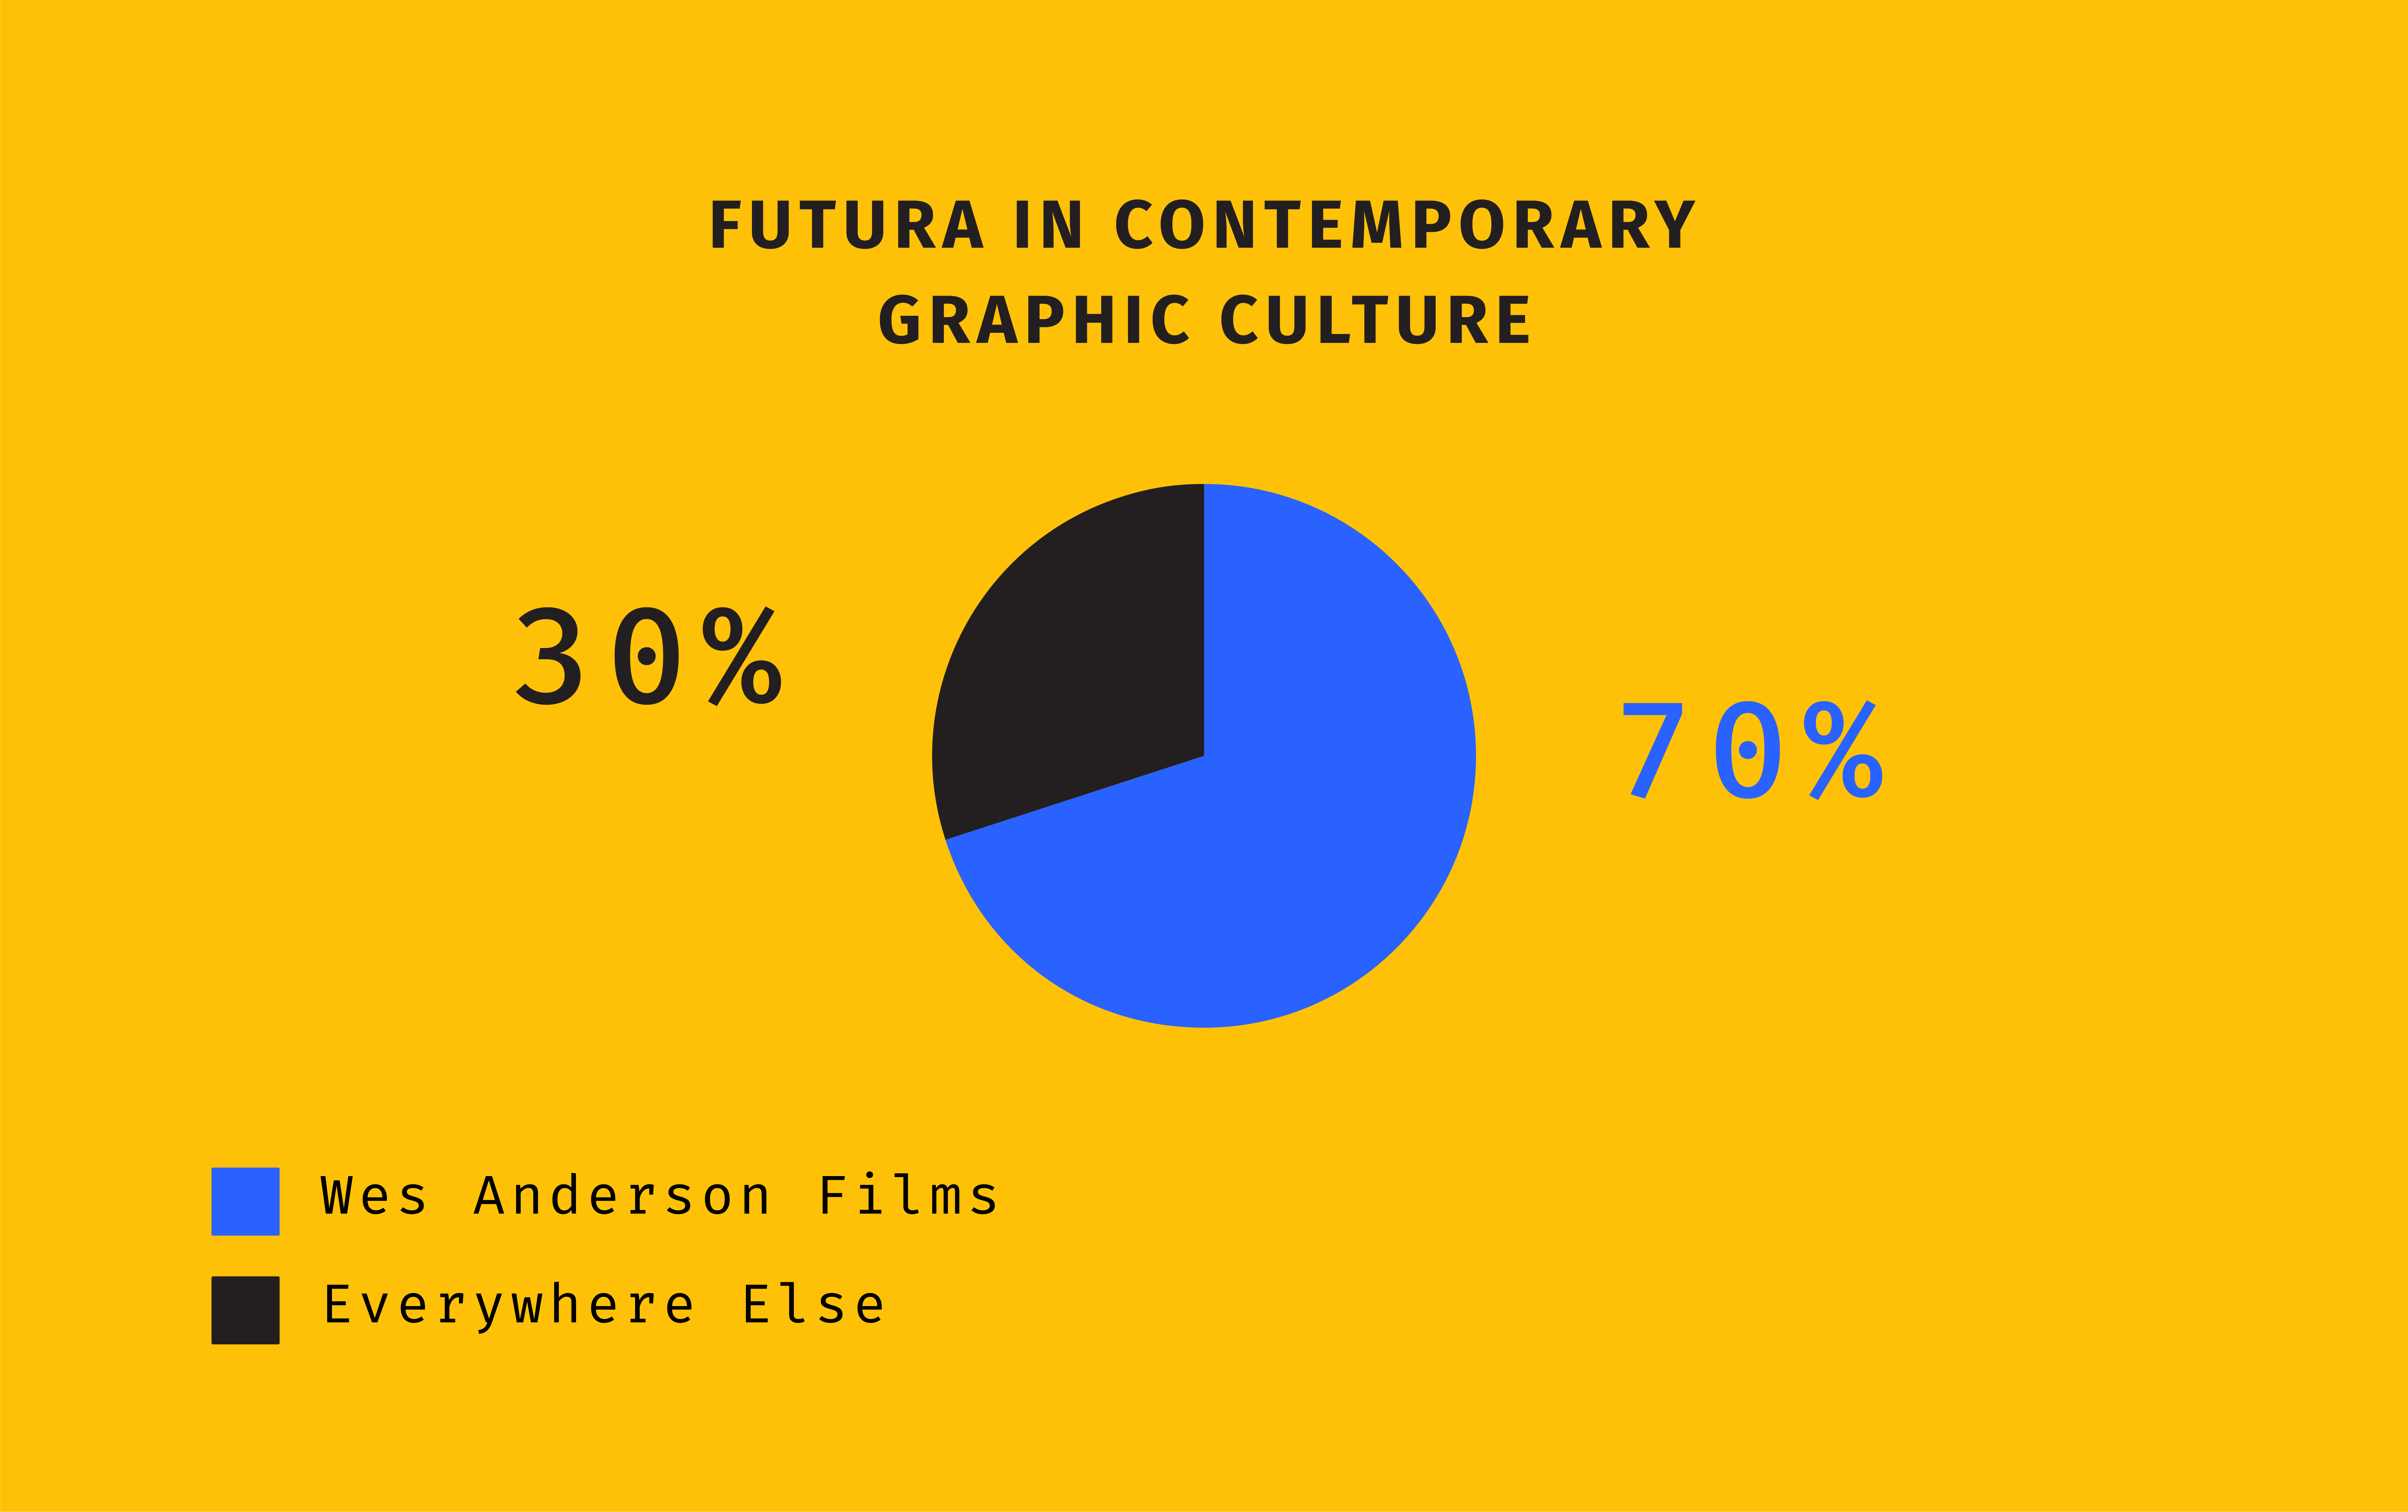 Chart titled 'Futura in Contemporary Graphic Culture' showing that Wes Anderson Films account for 70% of Futura's use while Futura's use everywhere else accounts for the other 30%.